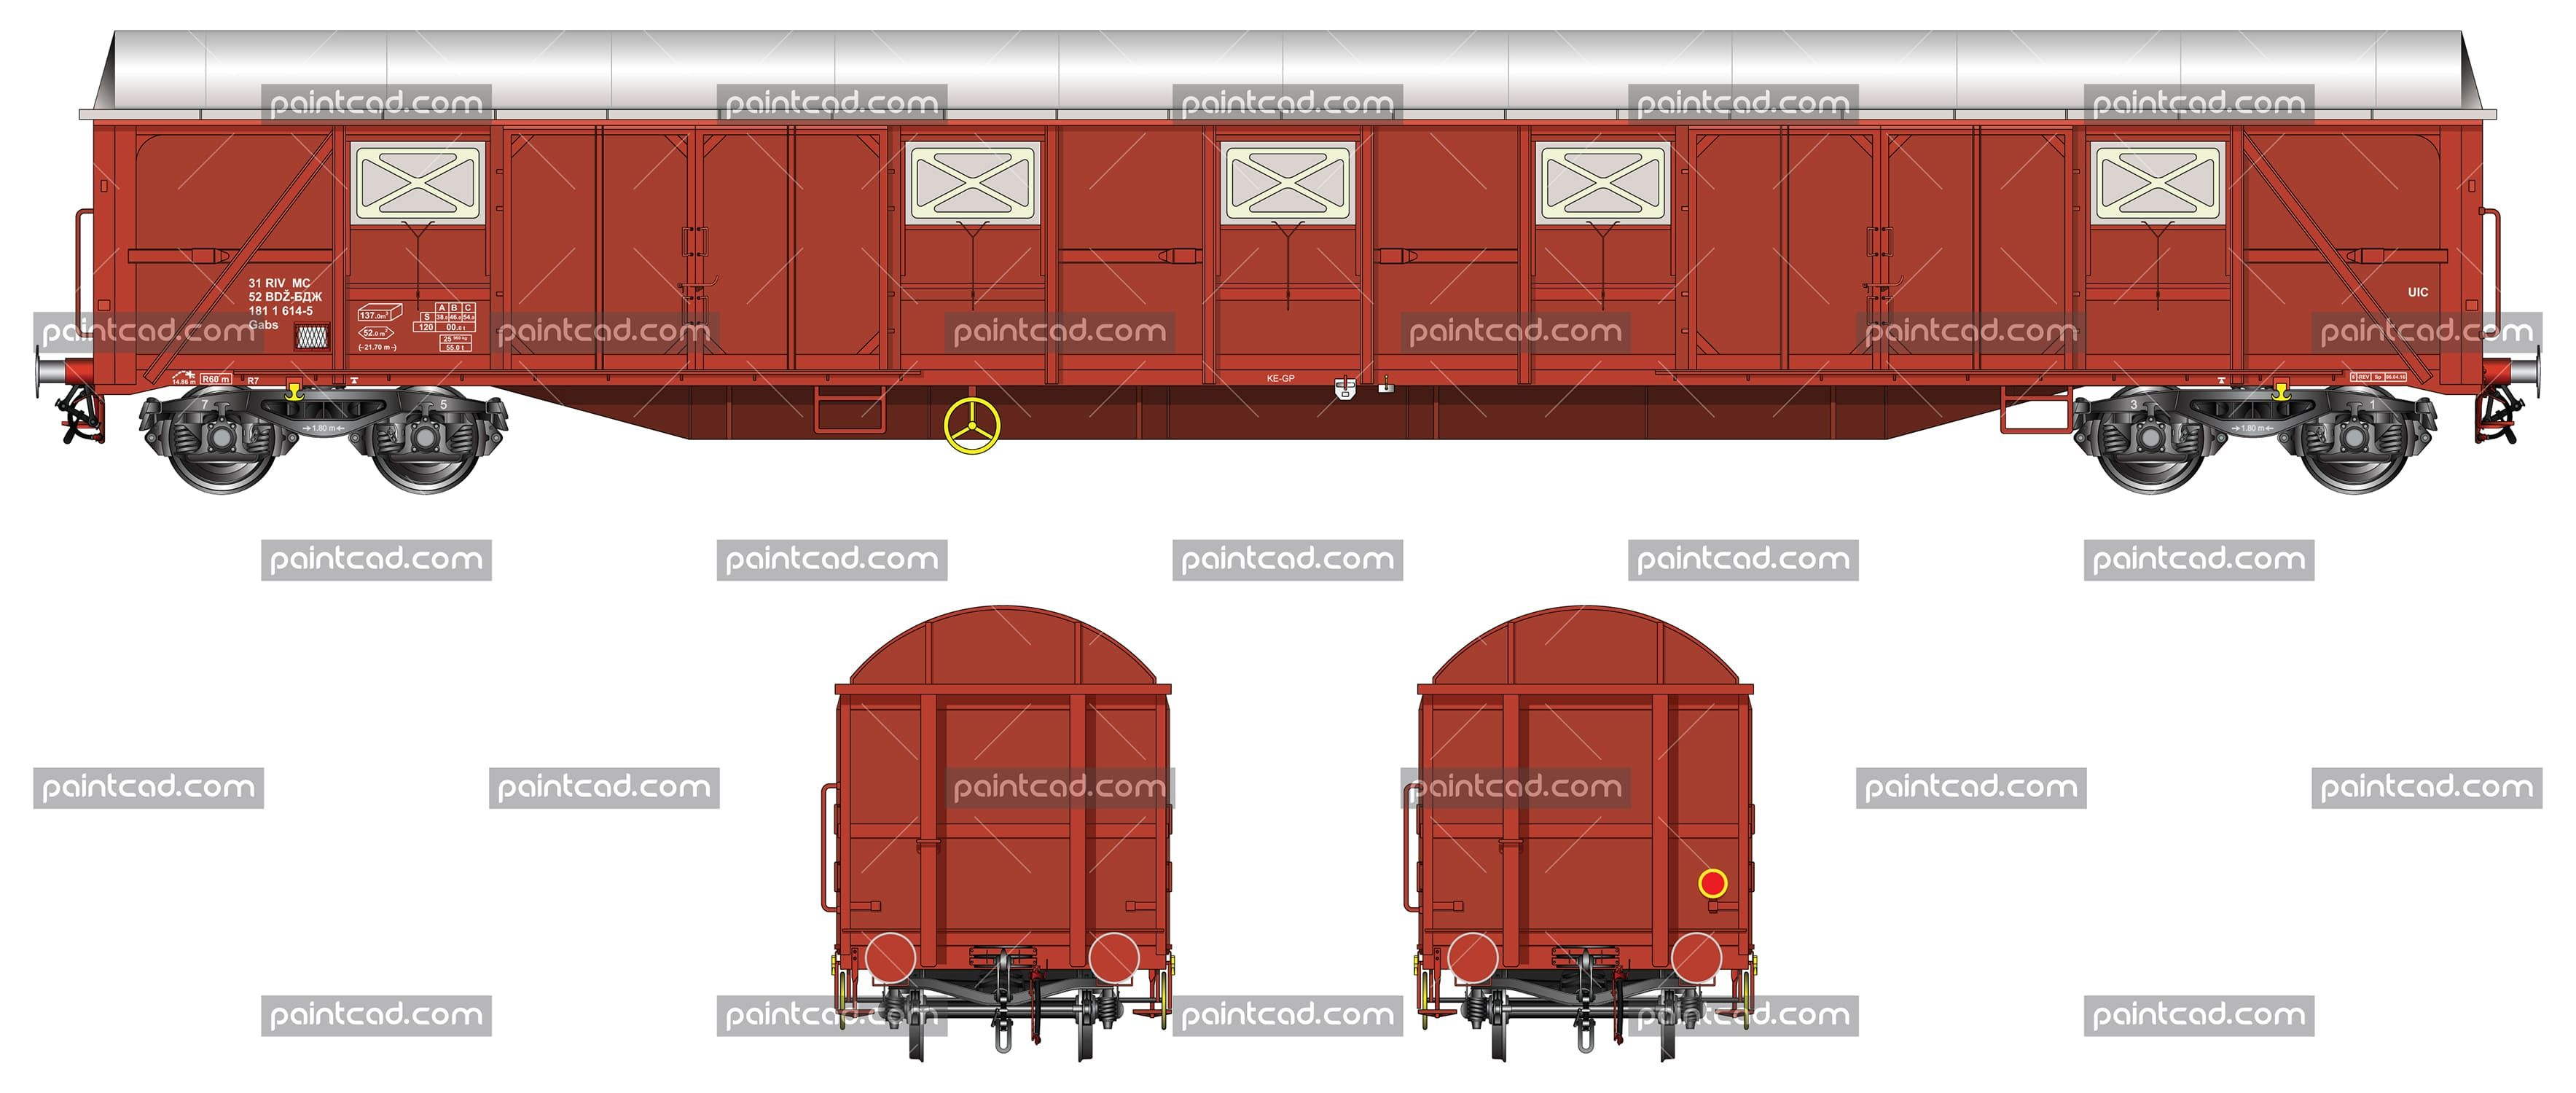 Covered Freight Wagon With Sliding Doors And Vents With Images